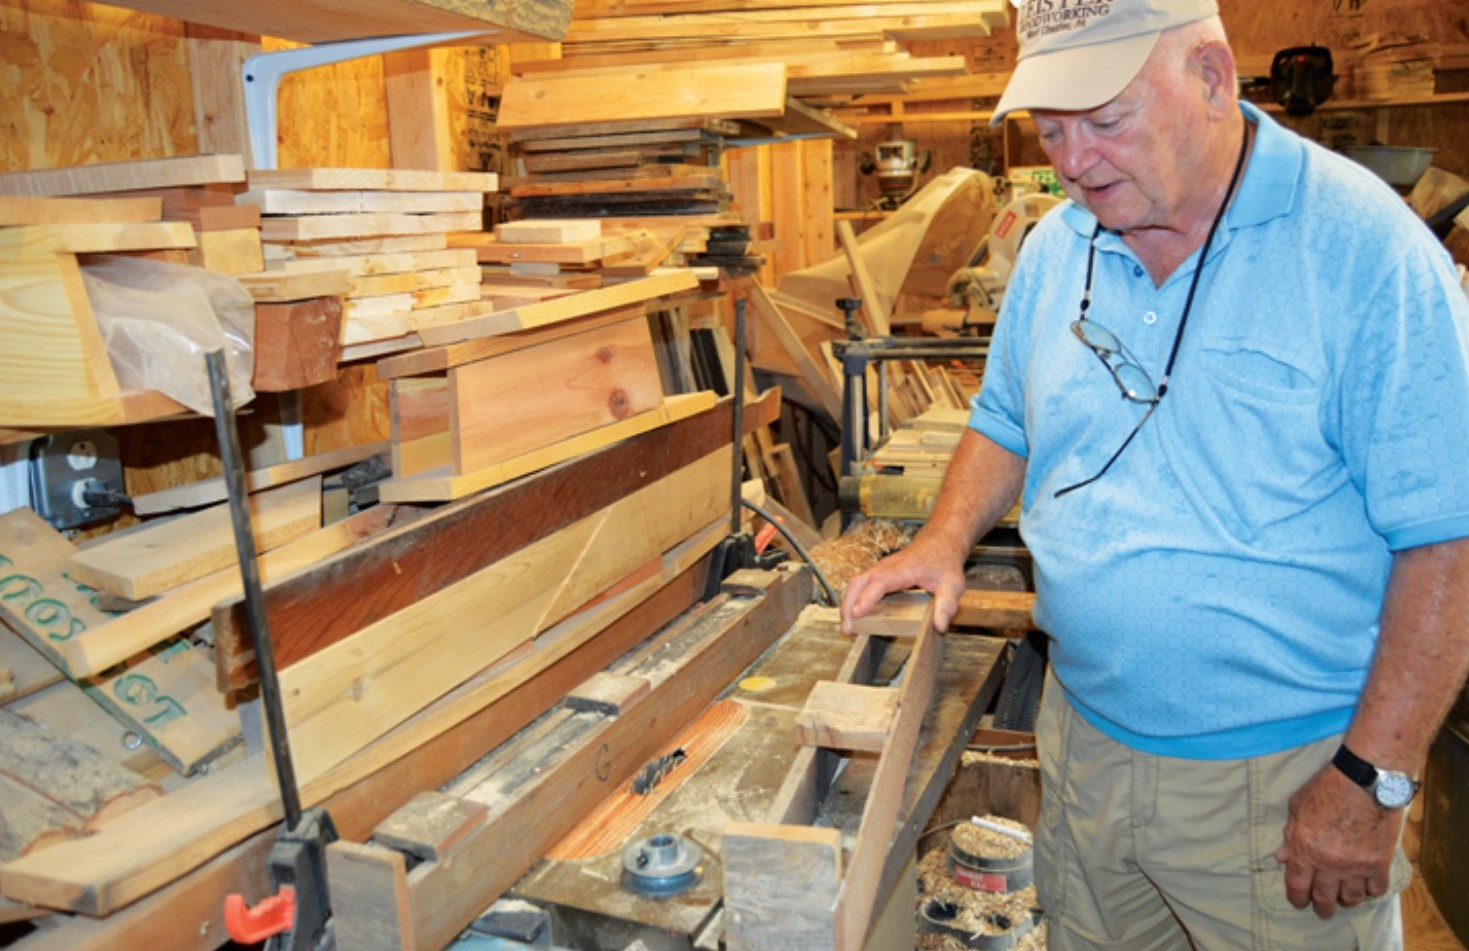 New Passion Keeps Retired Teacher from West Chester as Busy as a Bluebird